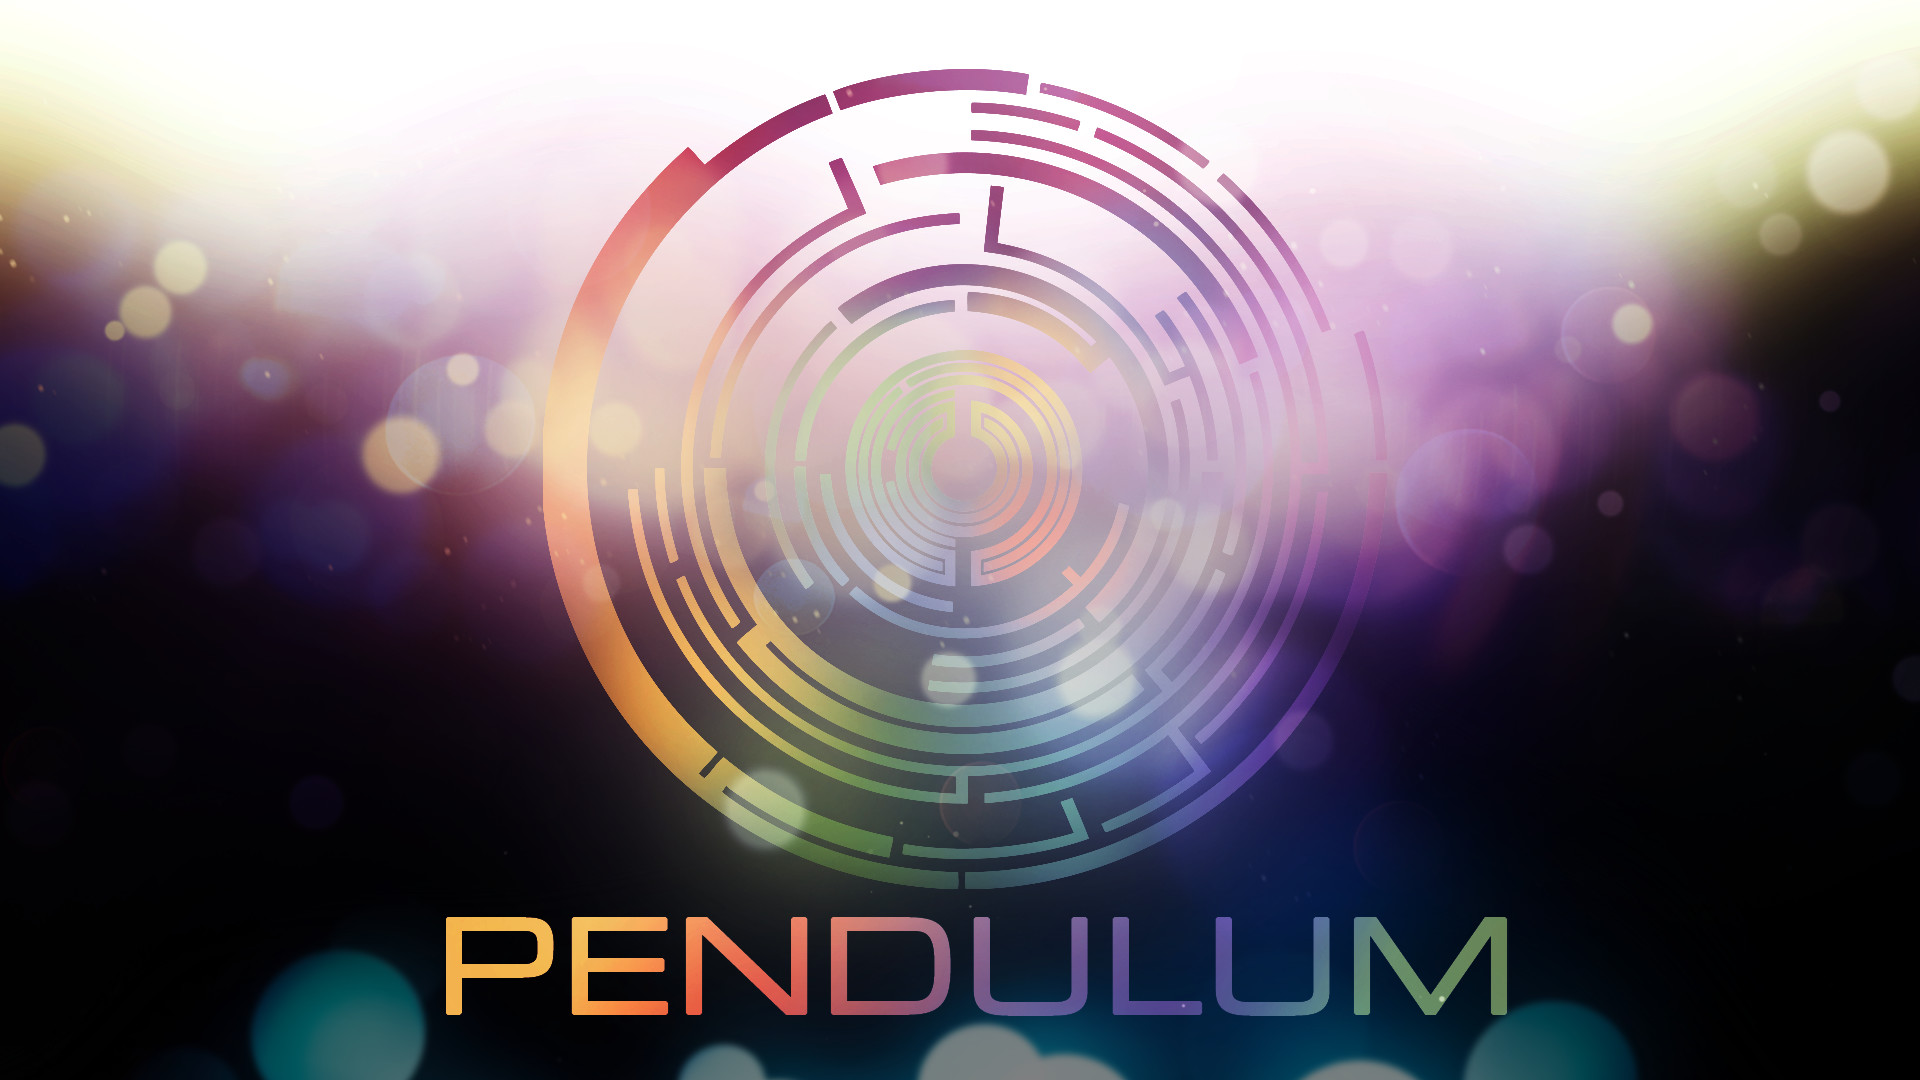 pendulums Pendulum dowsing has also been called divining for its ability to provide information and predict the future the term pendulum dowsing is often used to refer to the search for specific targets, while the term pendulum divining is most often used in reference to seeking precise information.